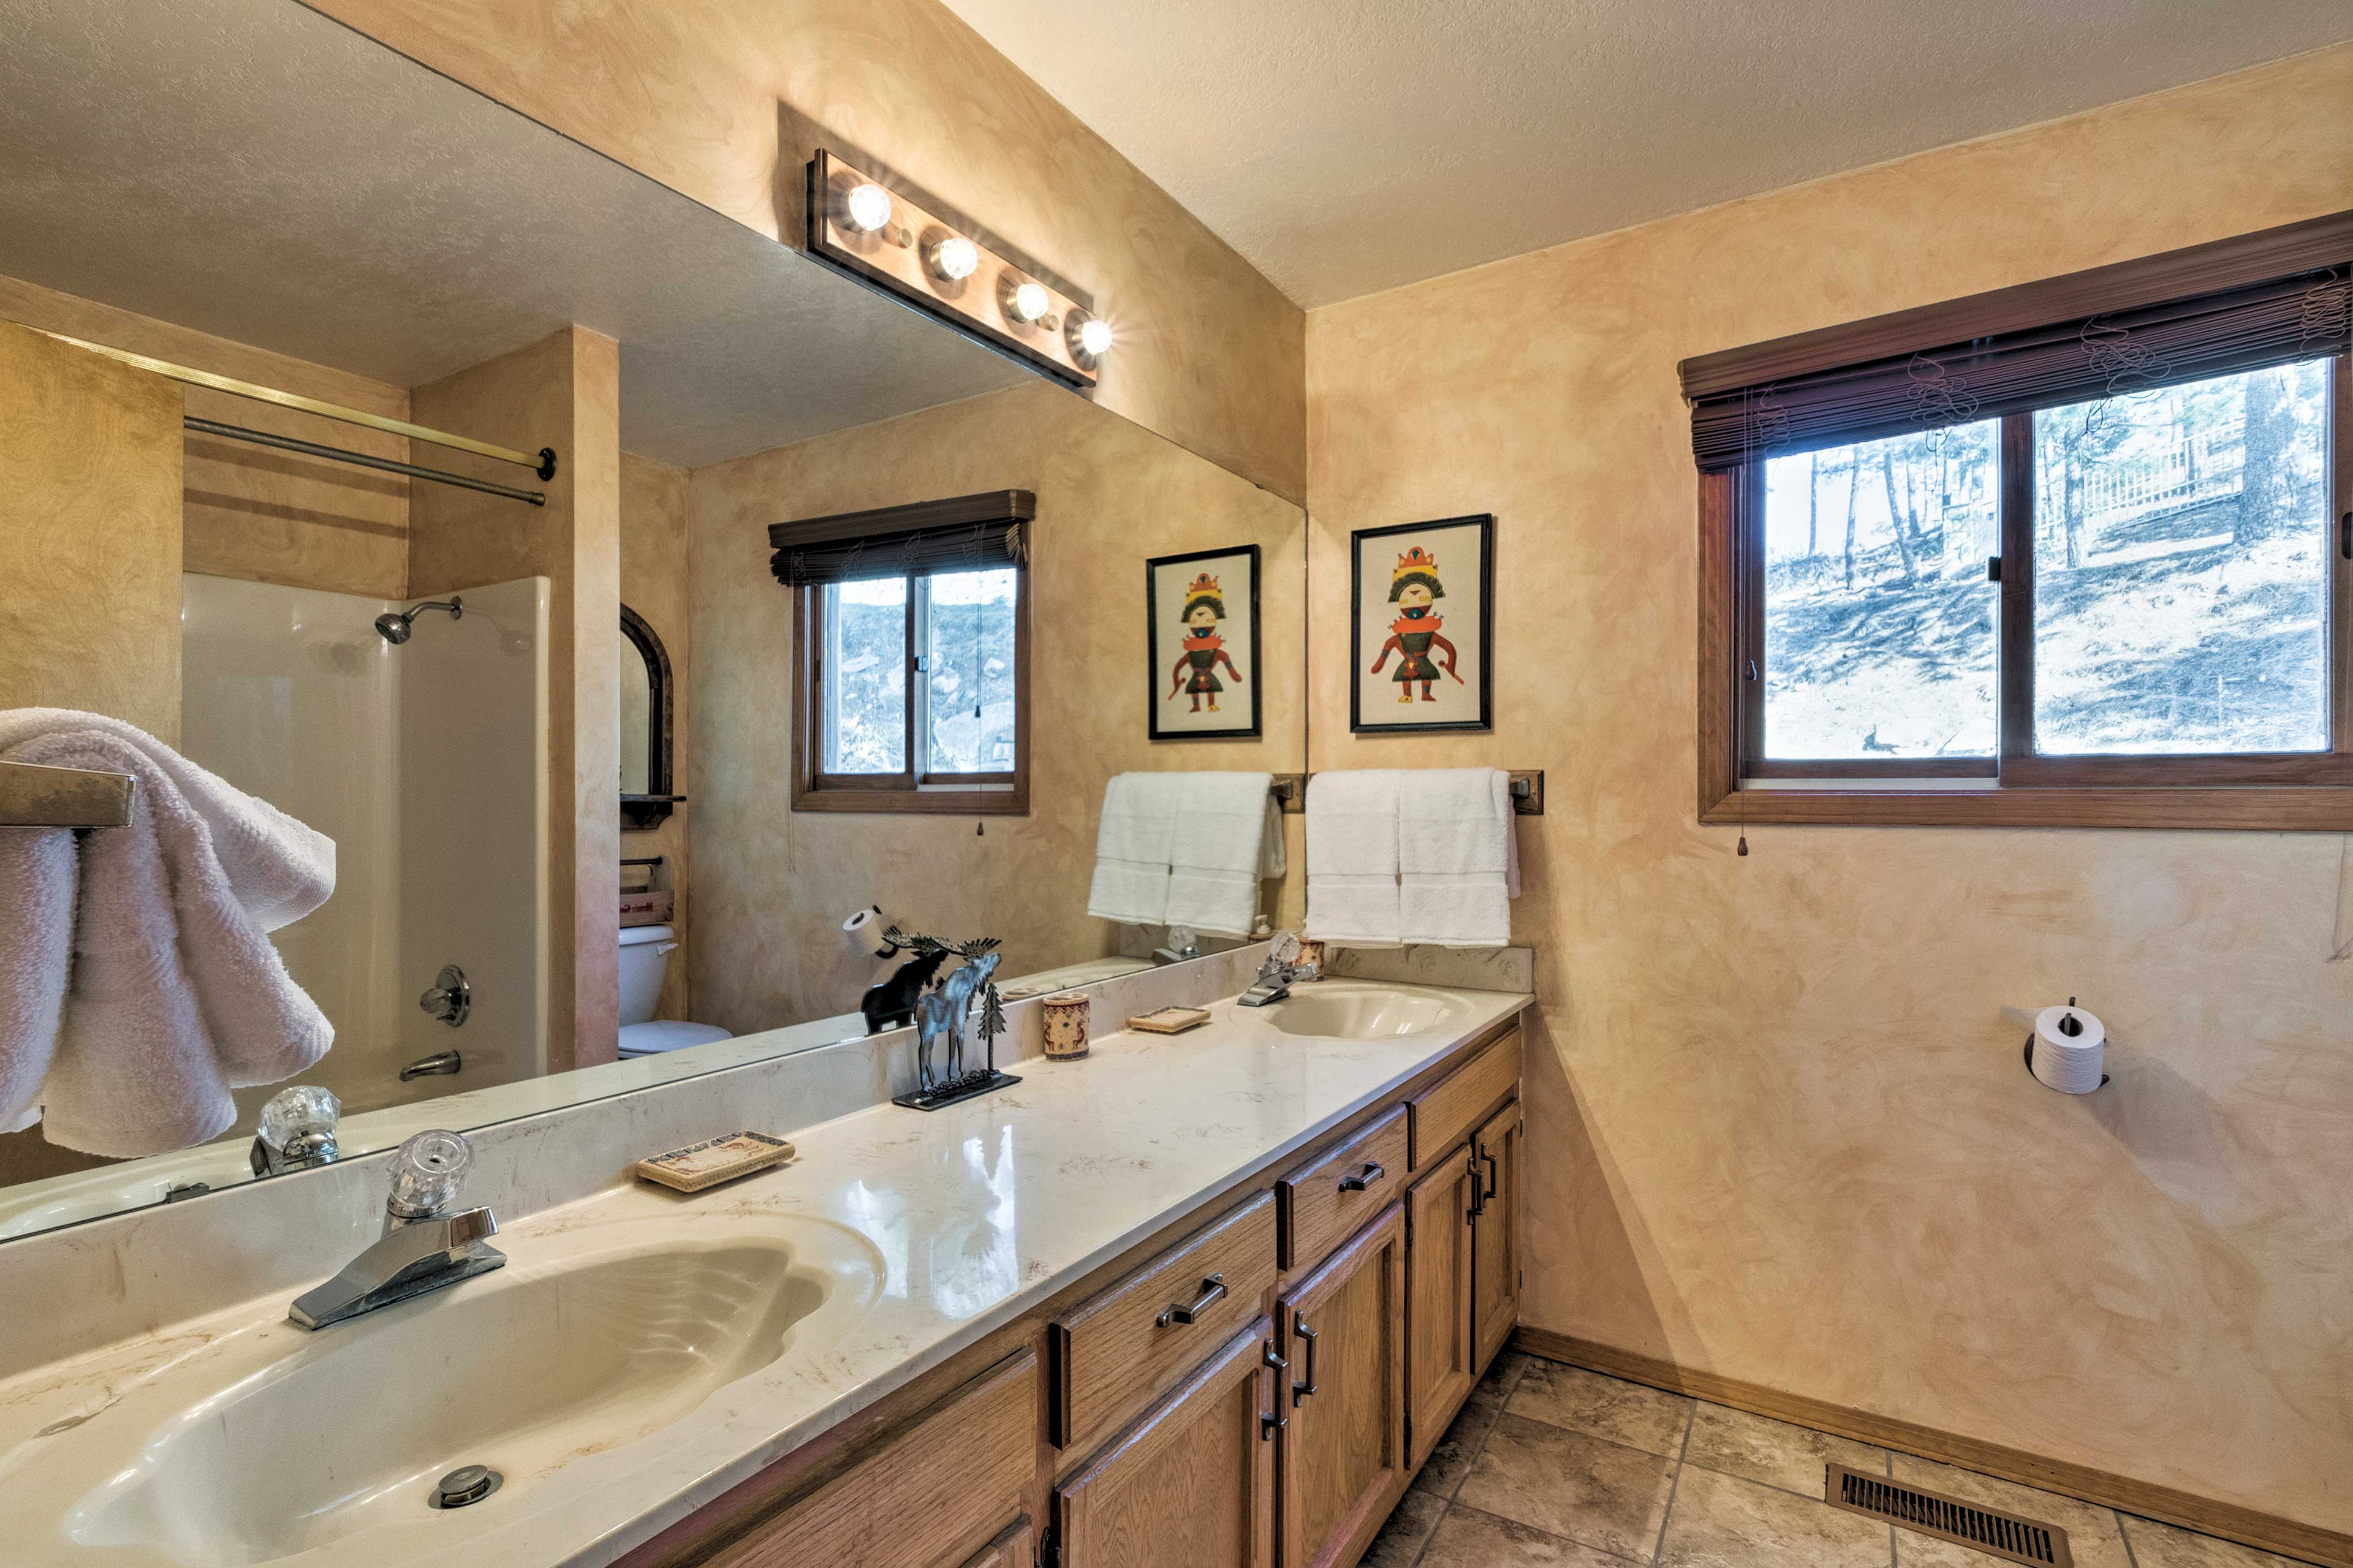 The loft features a full bathroom with double sinks.